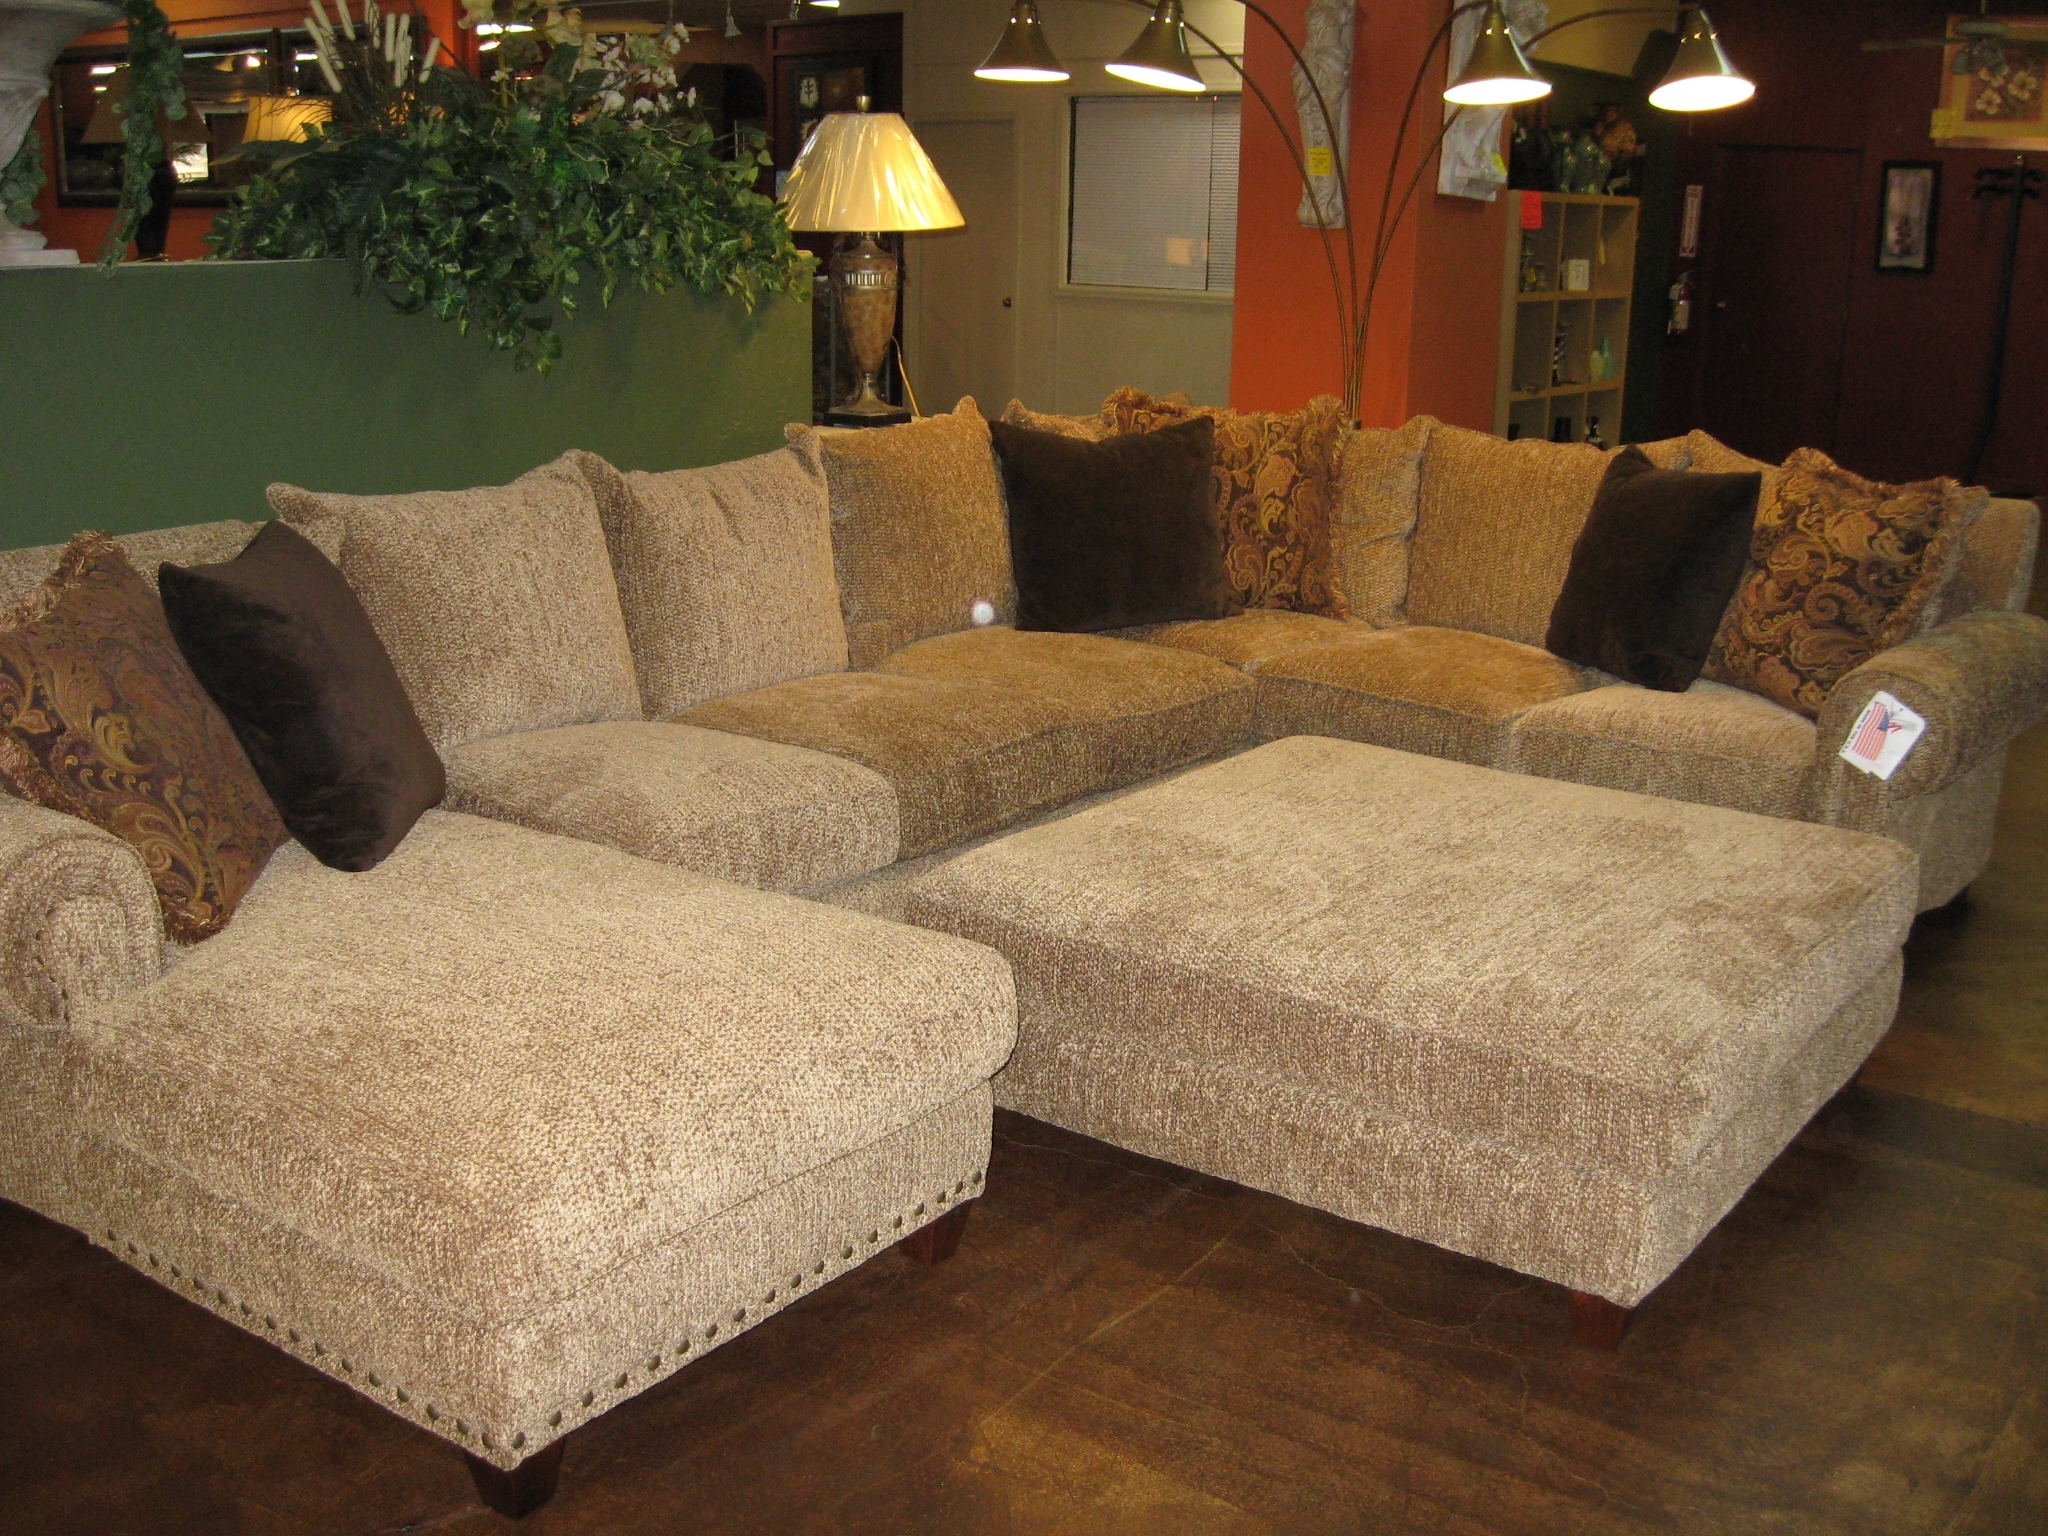 Elegant Large Sectional Sofa With Ottoman 52 With Additional Modern With Regard To Sofas With Large Ottoman (Image 2 of 10)